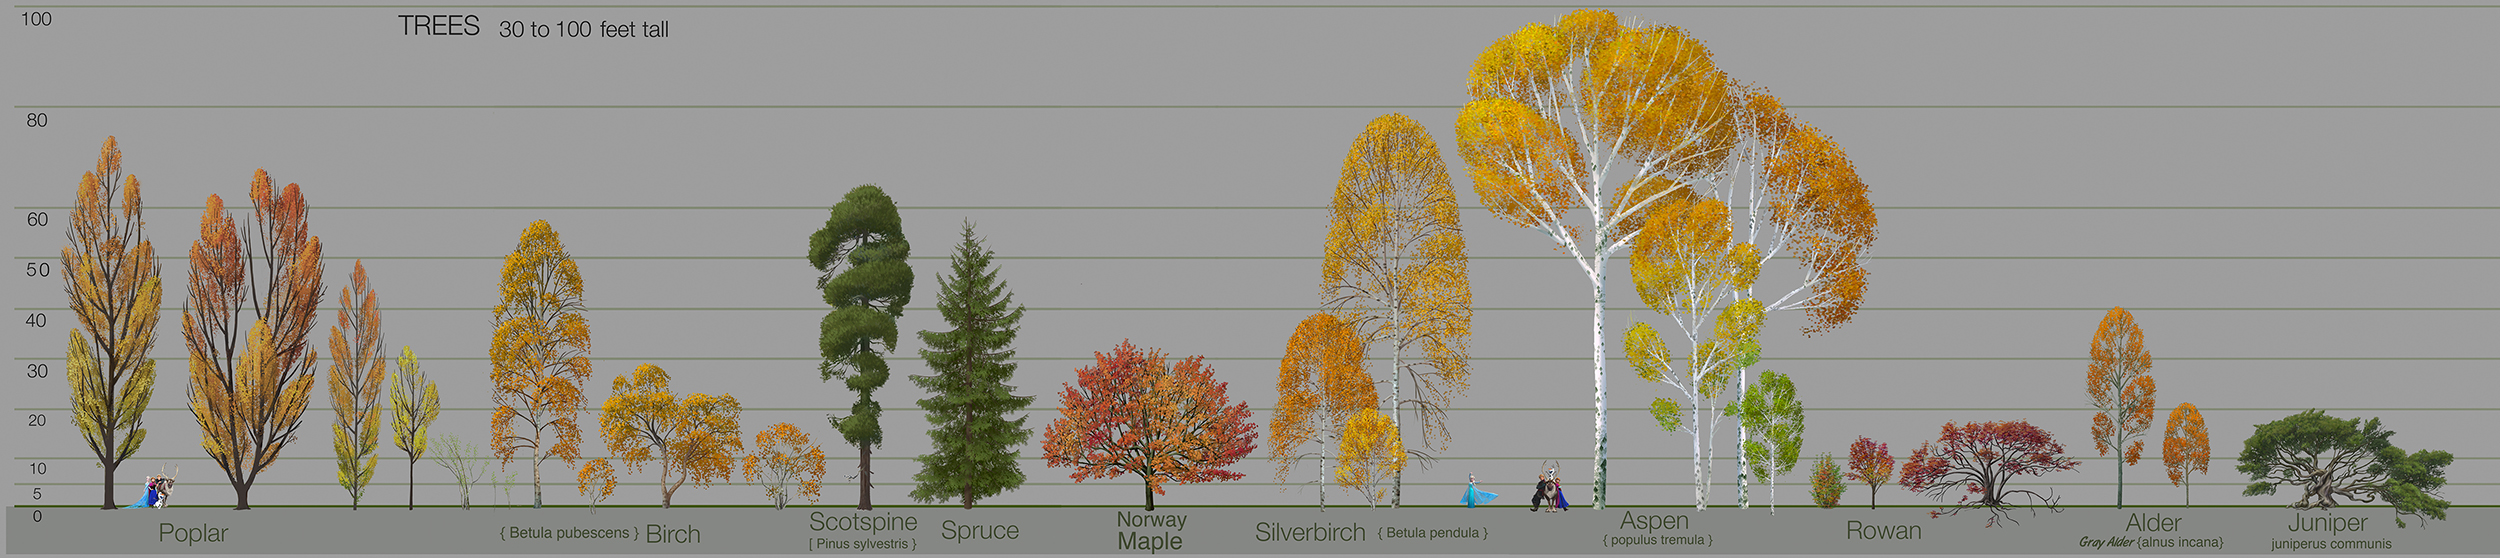 trees_scale3